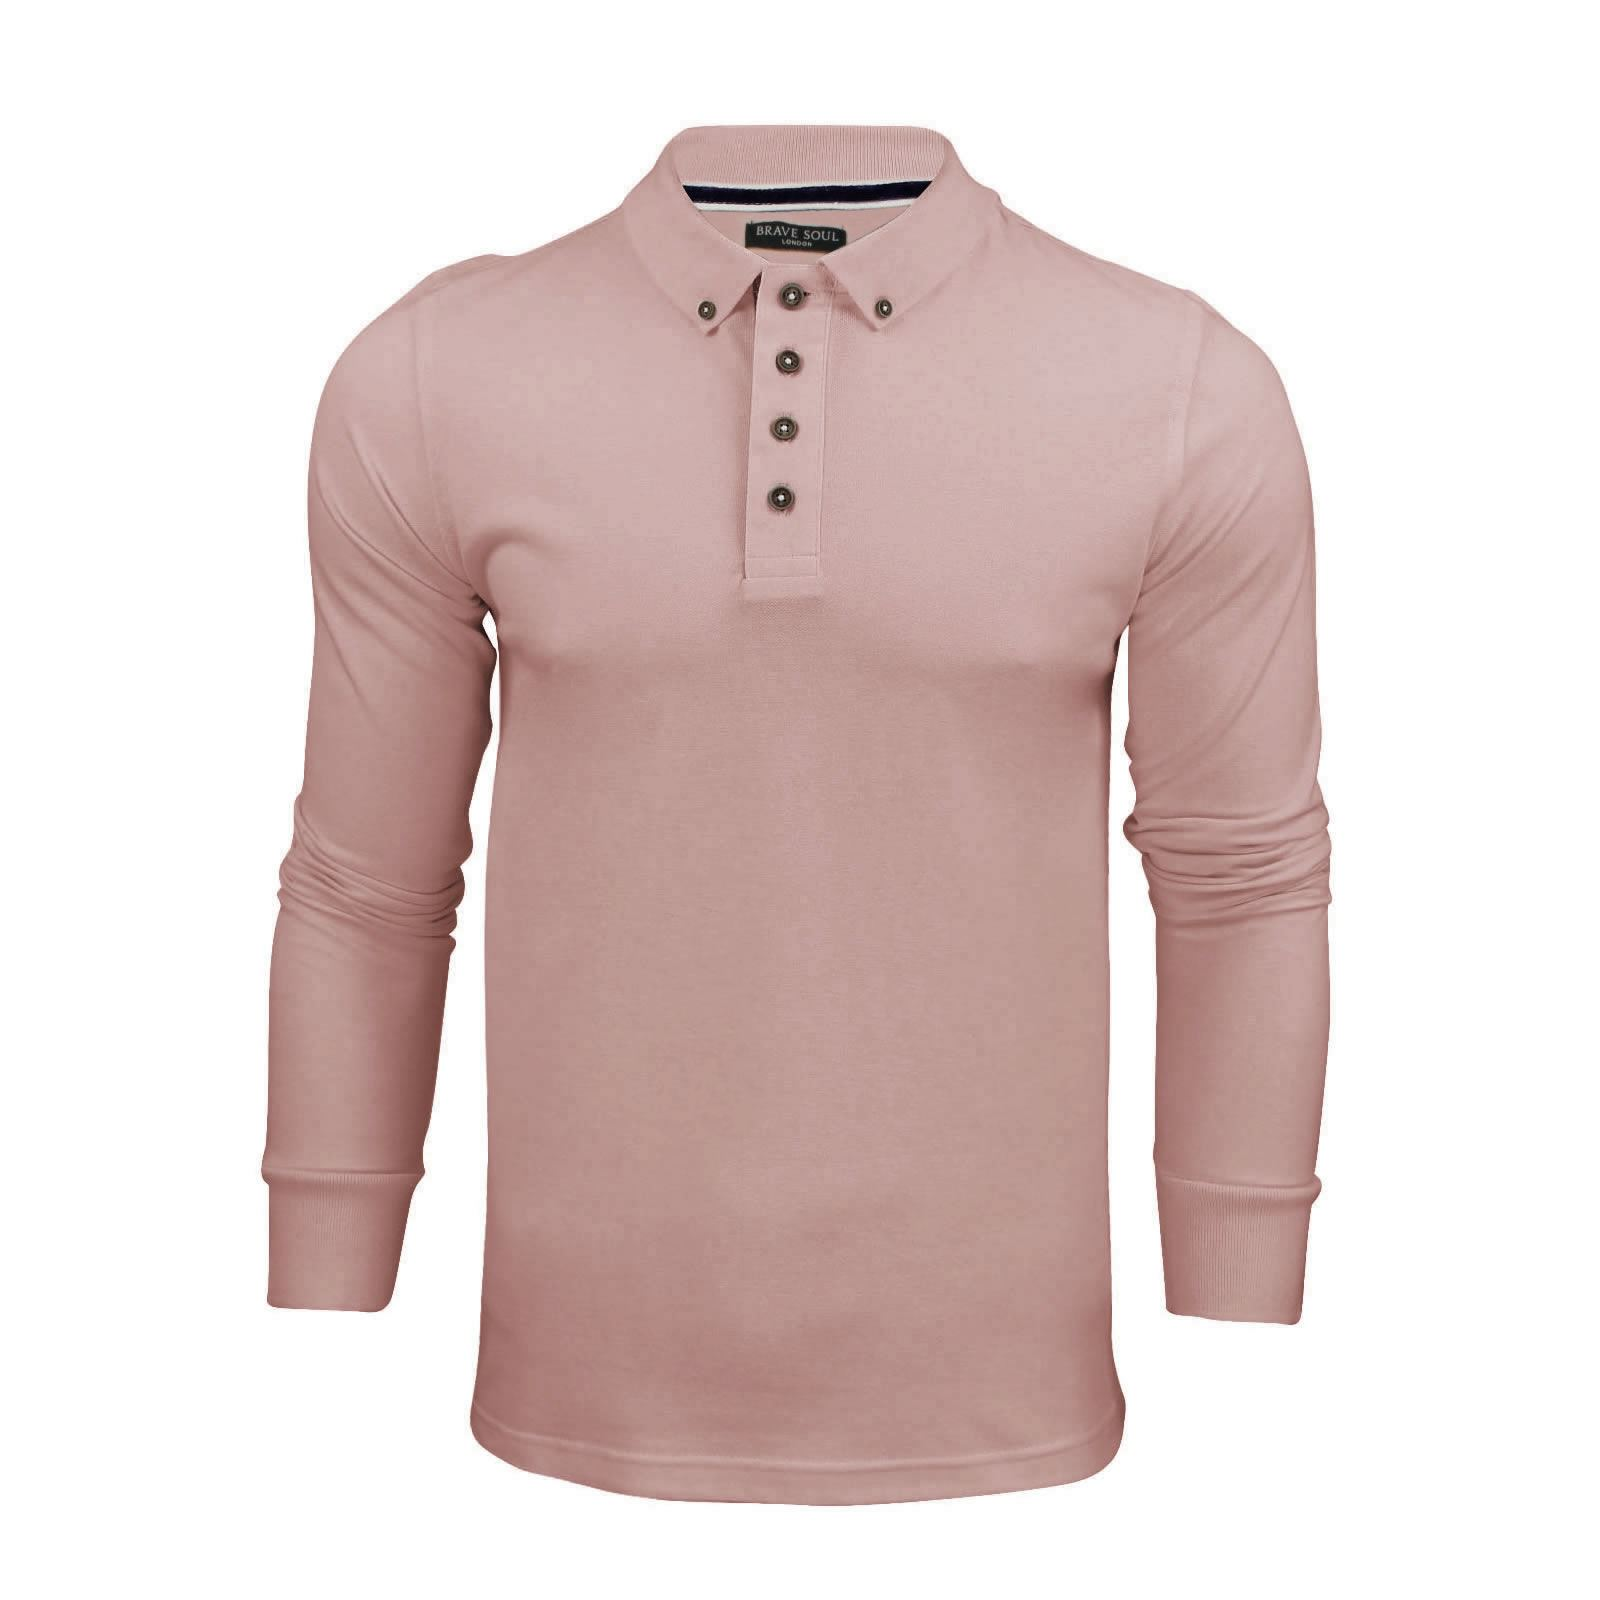 Brave-Soul-Lincoln-Homme-Polo-Shirt-a-Manches-Longues-En-Coton-Pique-Top-Casual miniature 22